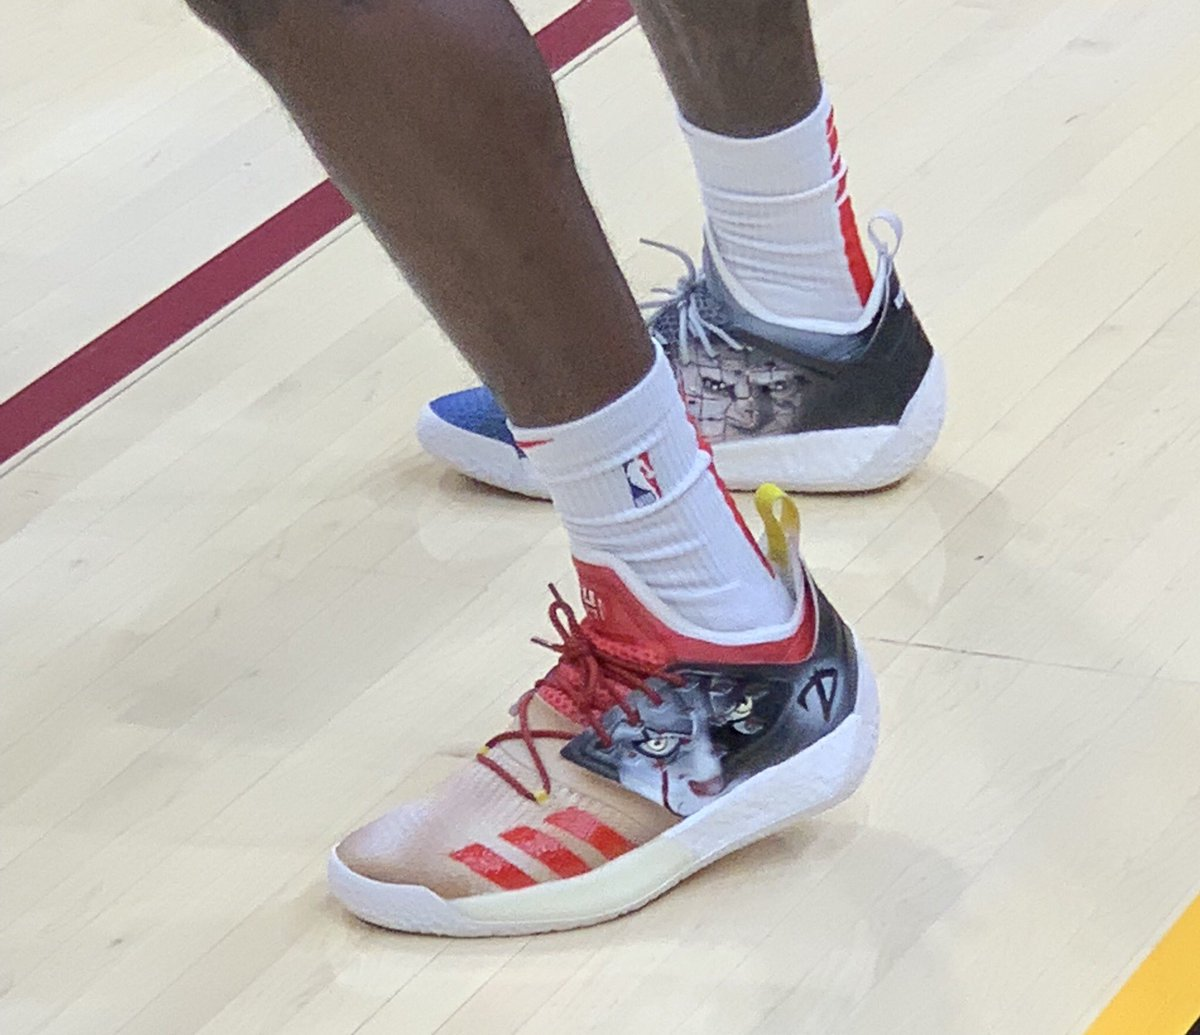 797c01186f6 solewatch taureanprince wearing an adidas harden vol 2 custom for halloween